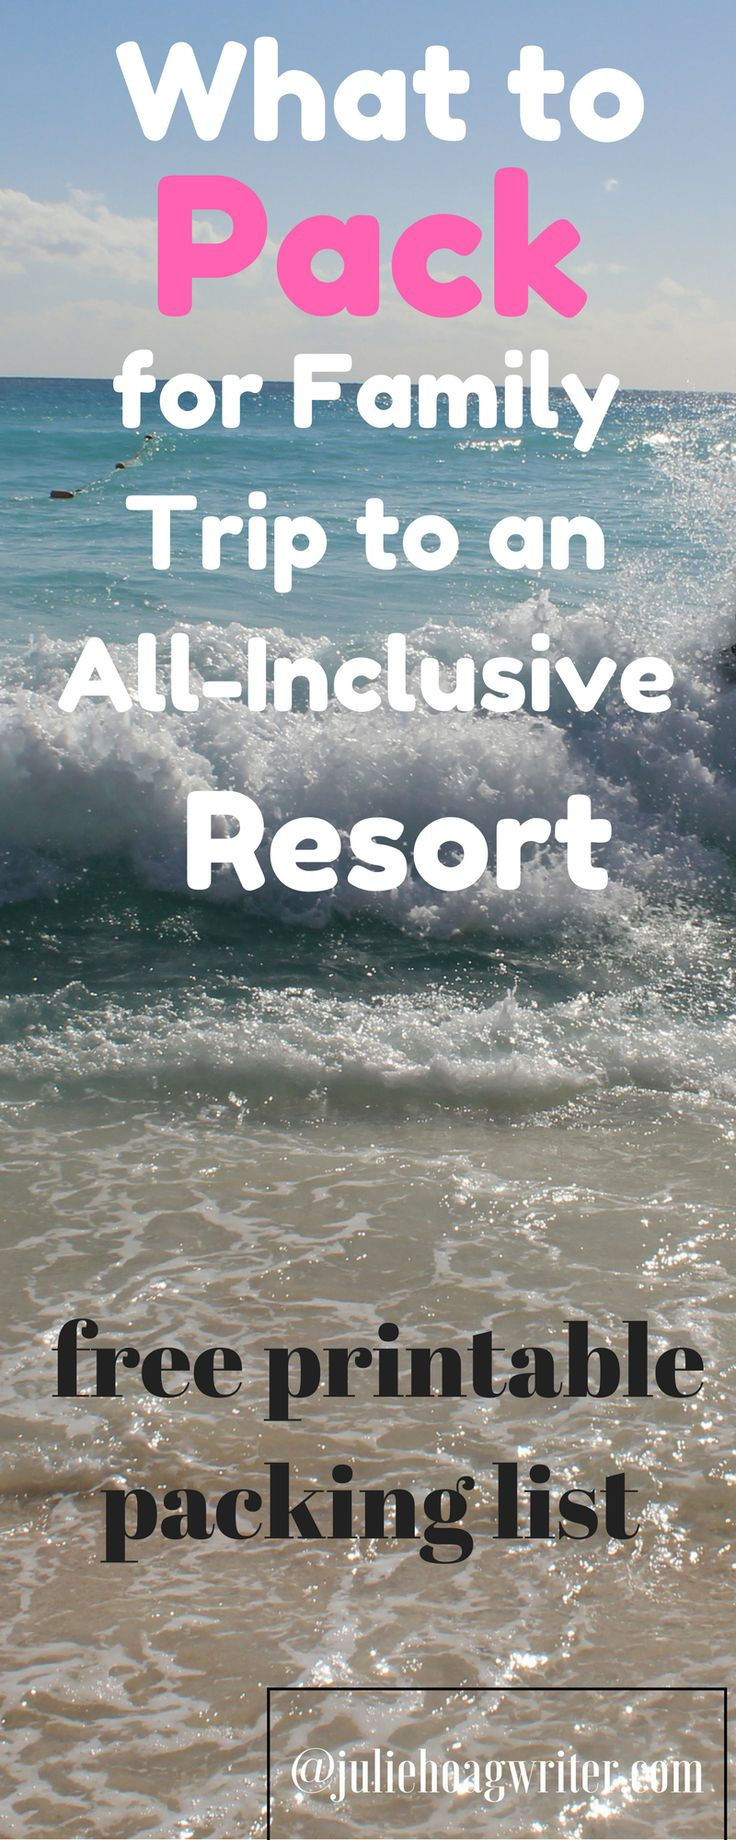 Travel Hack, use a free packing list. What to Pack for a Family trip to an all inclusive resort in Mexico. Free packing list printable. family packing for vacation | family packing list | packing for travel | packing tips for vacation | family travel tips #familytraveldestinations #freepackinglist #familypackingtips family travel tips | packing list for vacation | packing list for travel | all inclusive resorts for families | all inclusive resort | all inclusive vacations #familygetaway